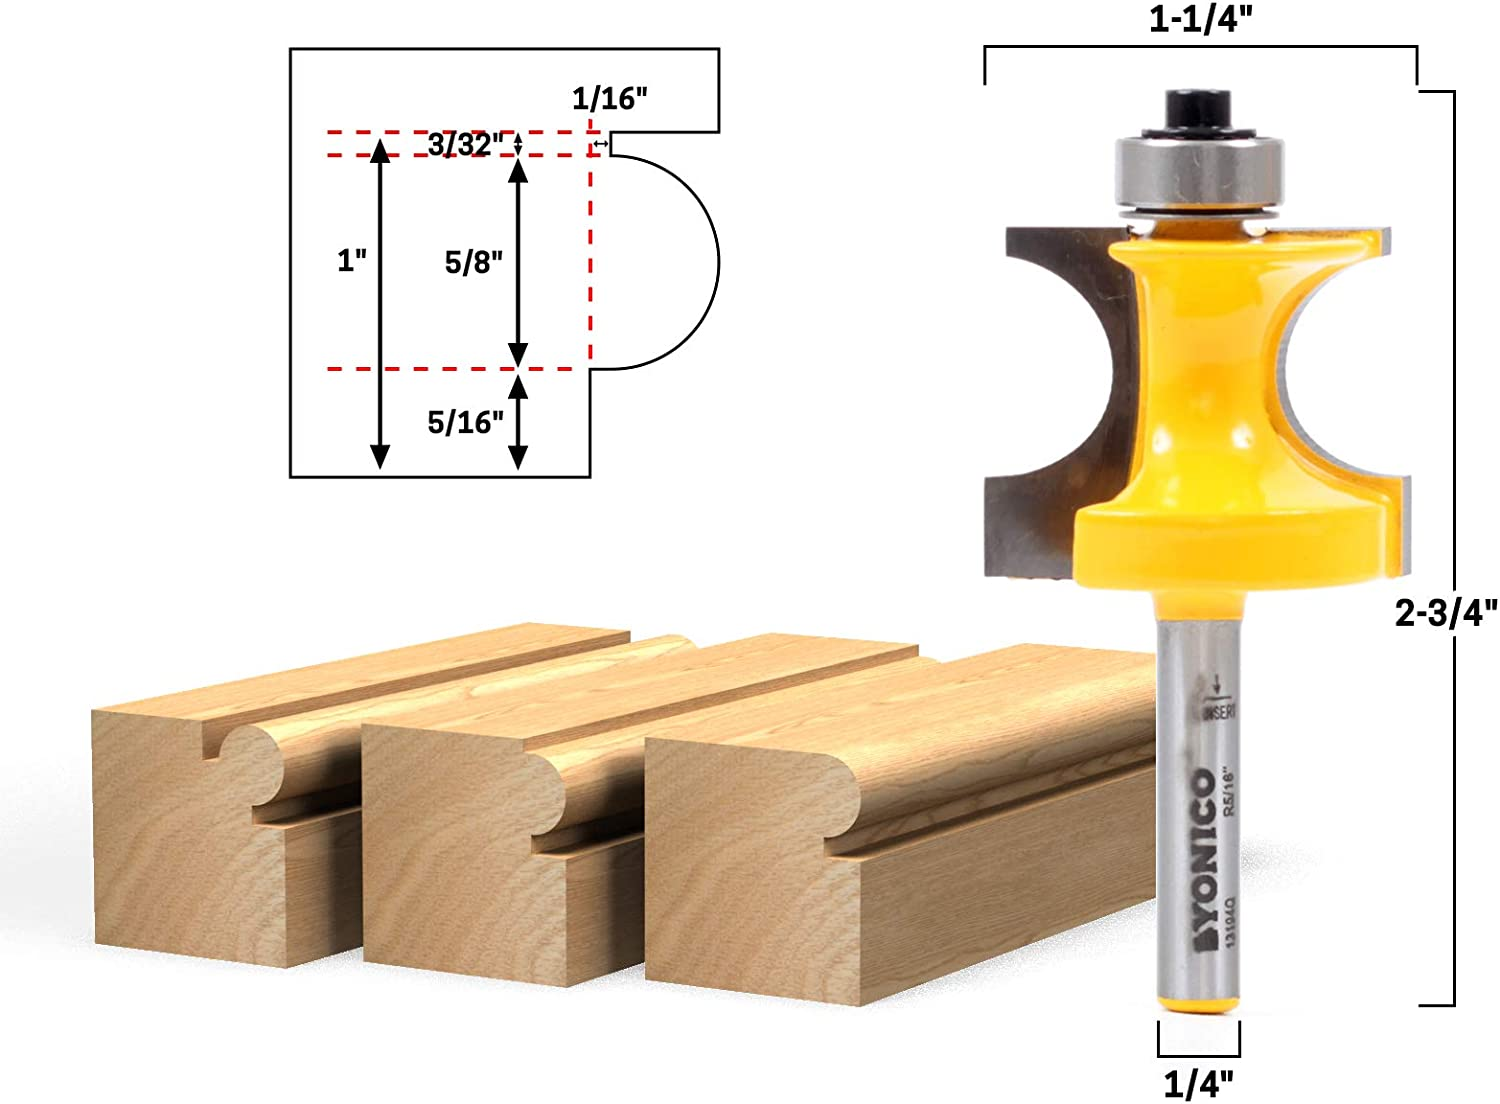 Yonico 13193q 1//2-Inch Bead Bullnose Bead Router Bit 1//4-Inch Shank